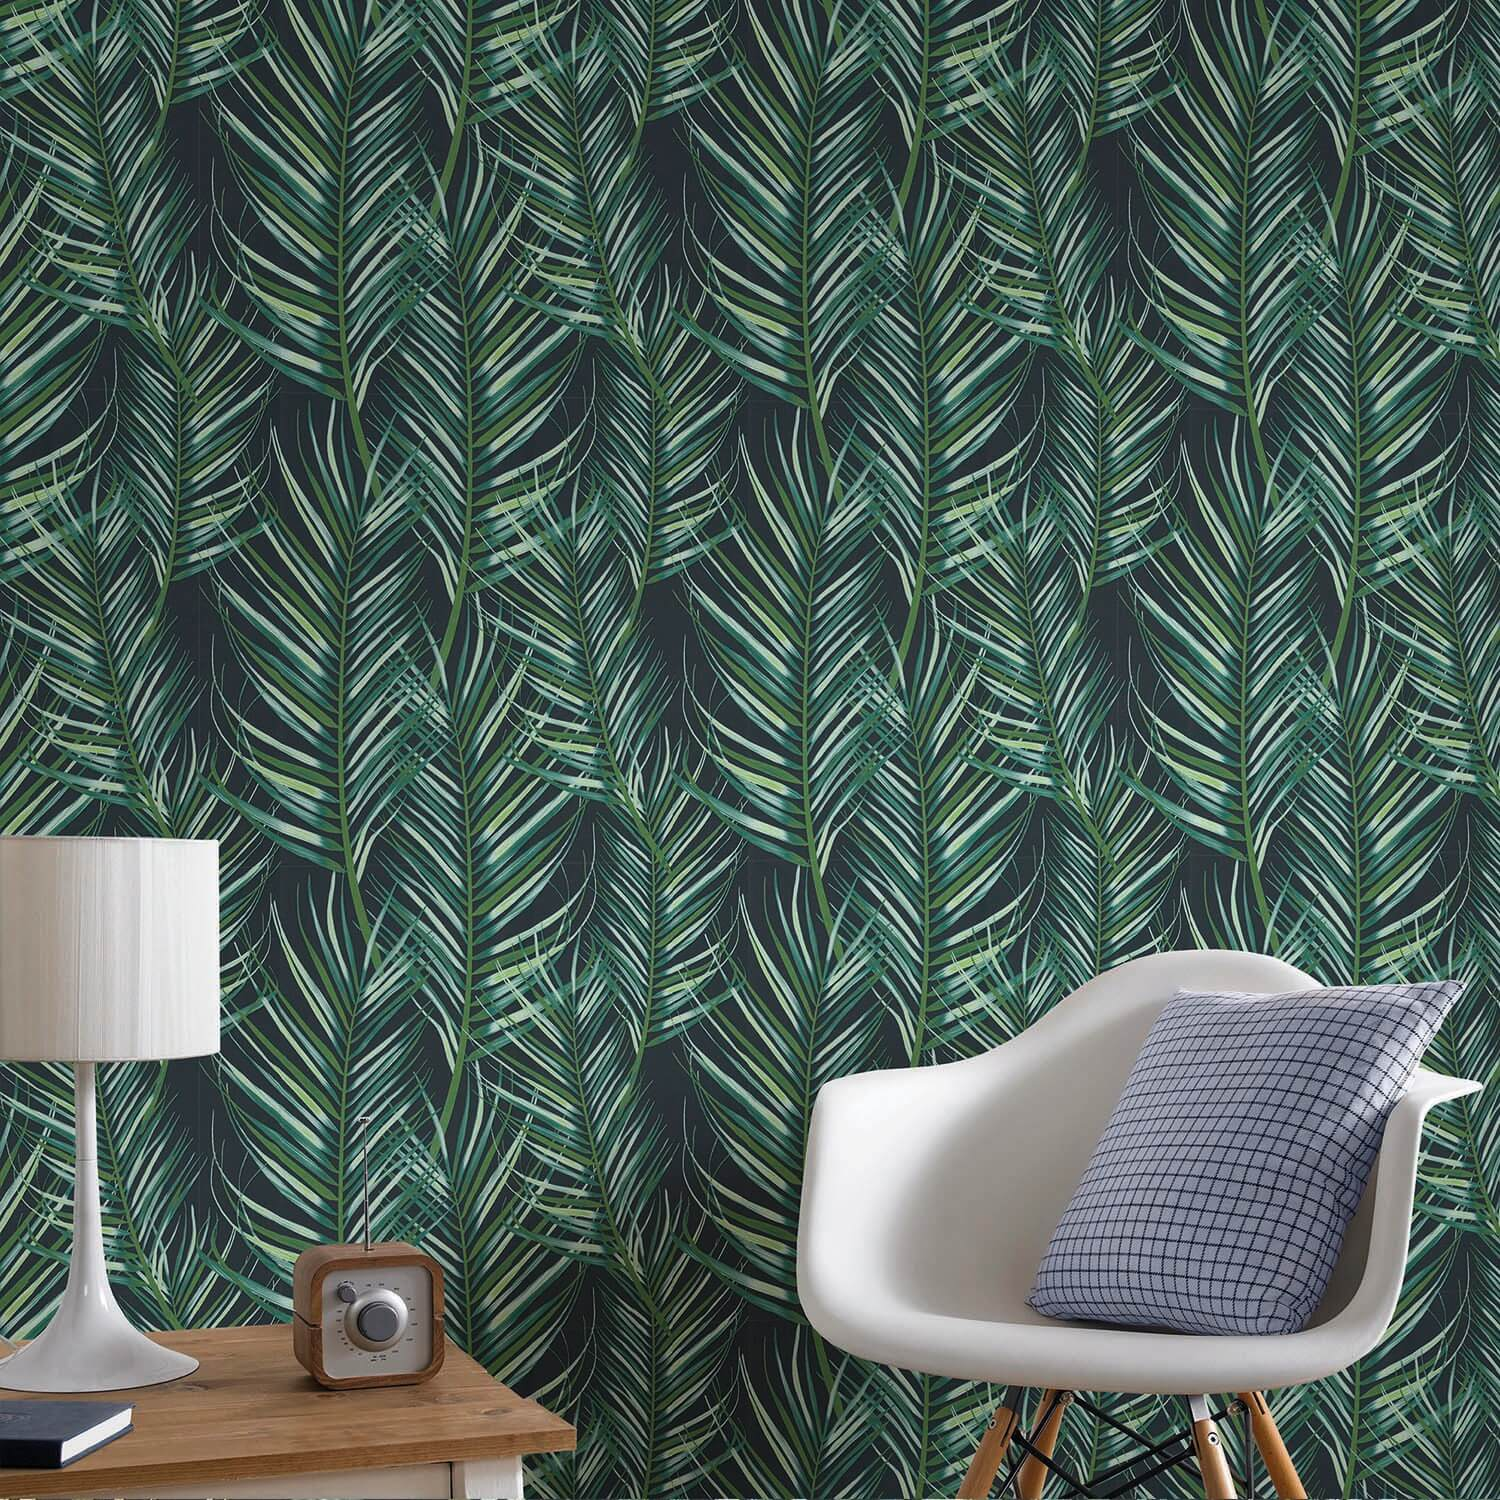 Image of Graham & Brown Palm Leaves Wallpaper, Green